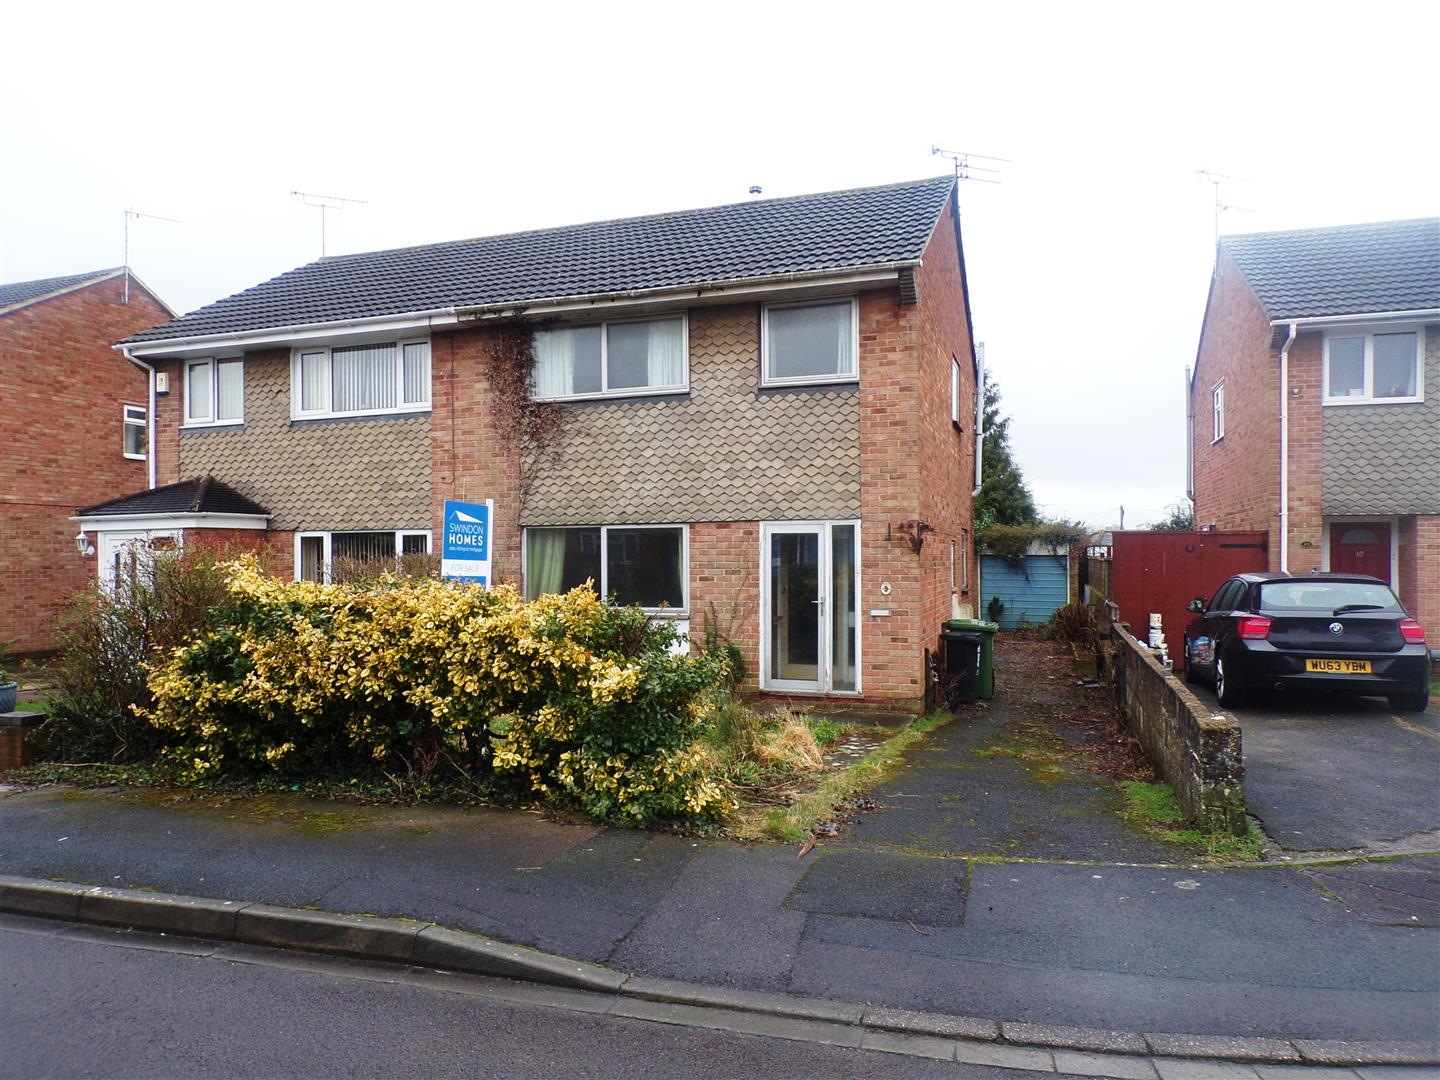 3 Bedrooms Semi Detached House for sale in Cadley Close, Swindon